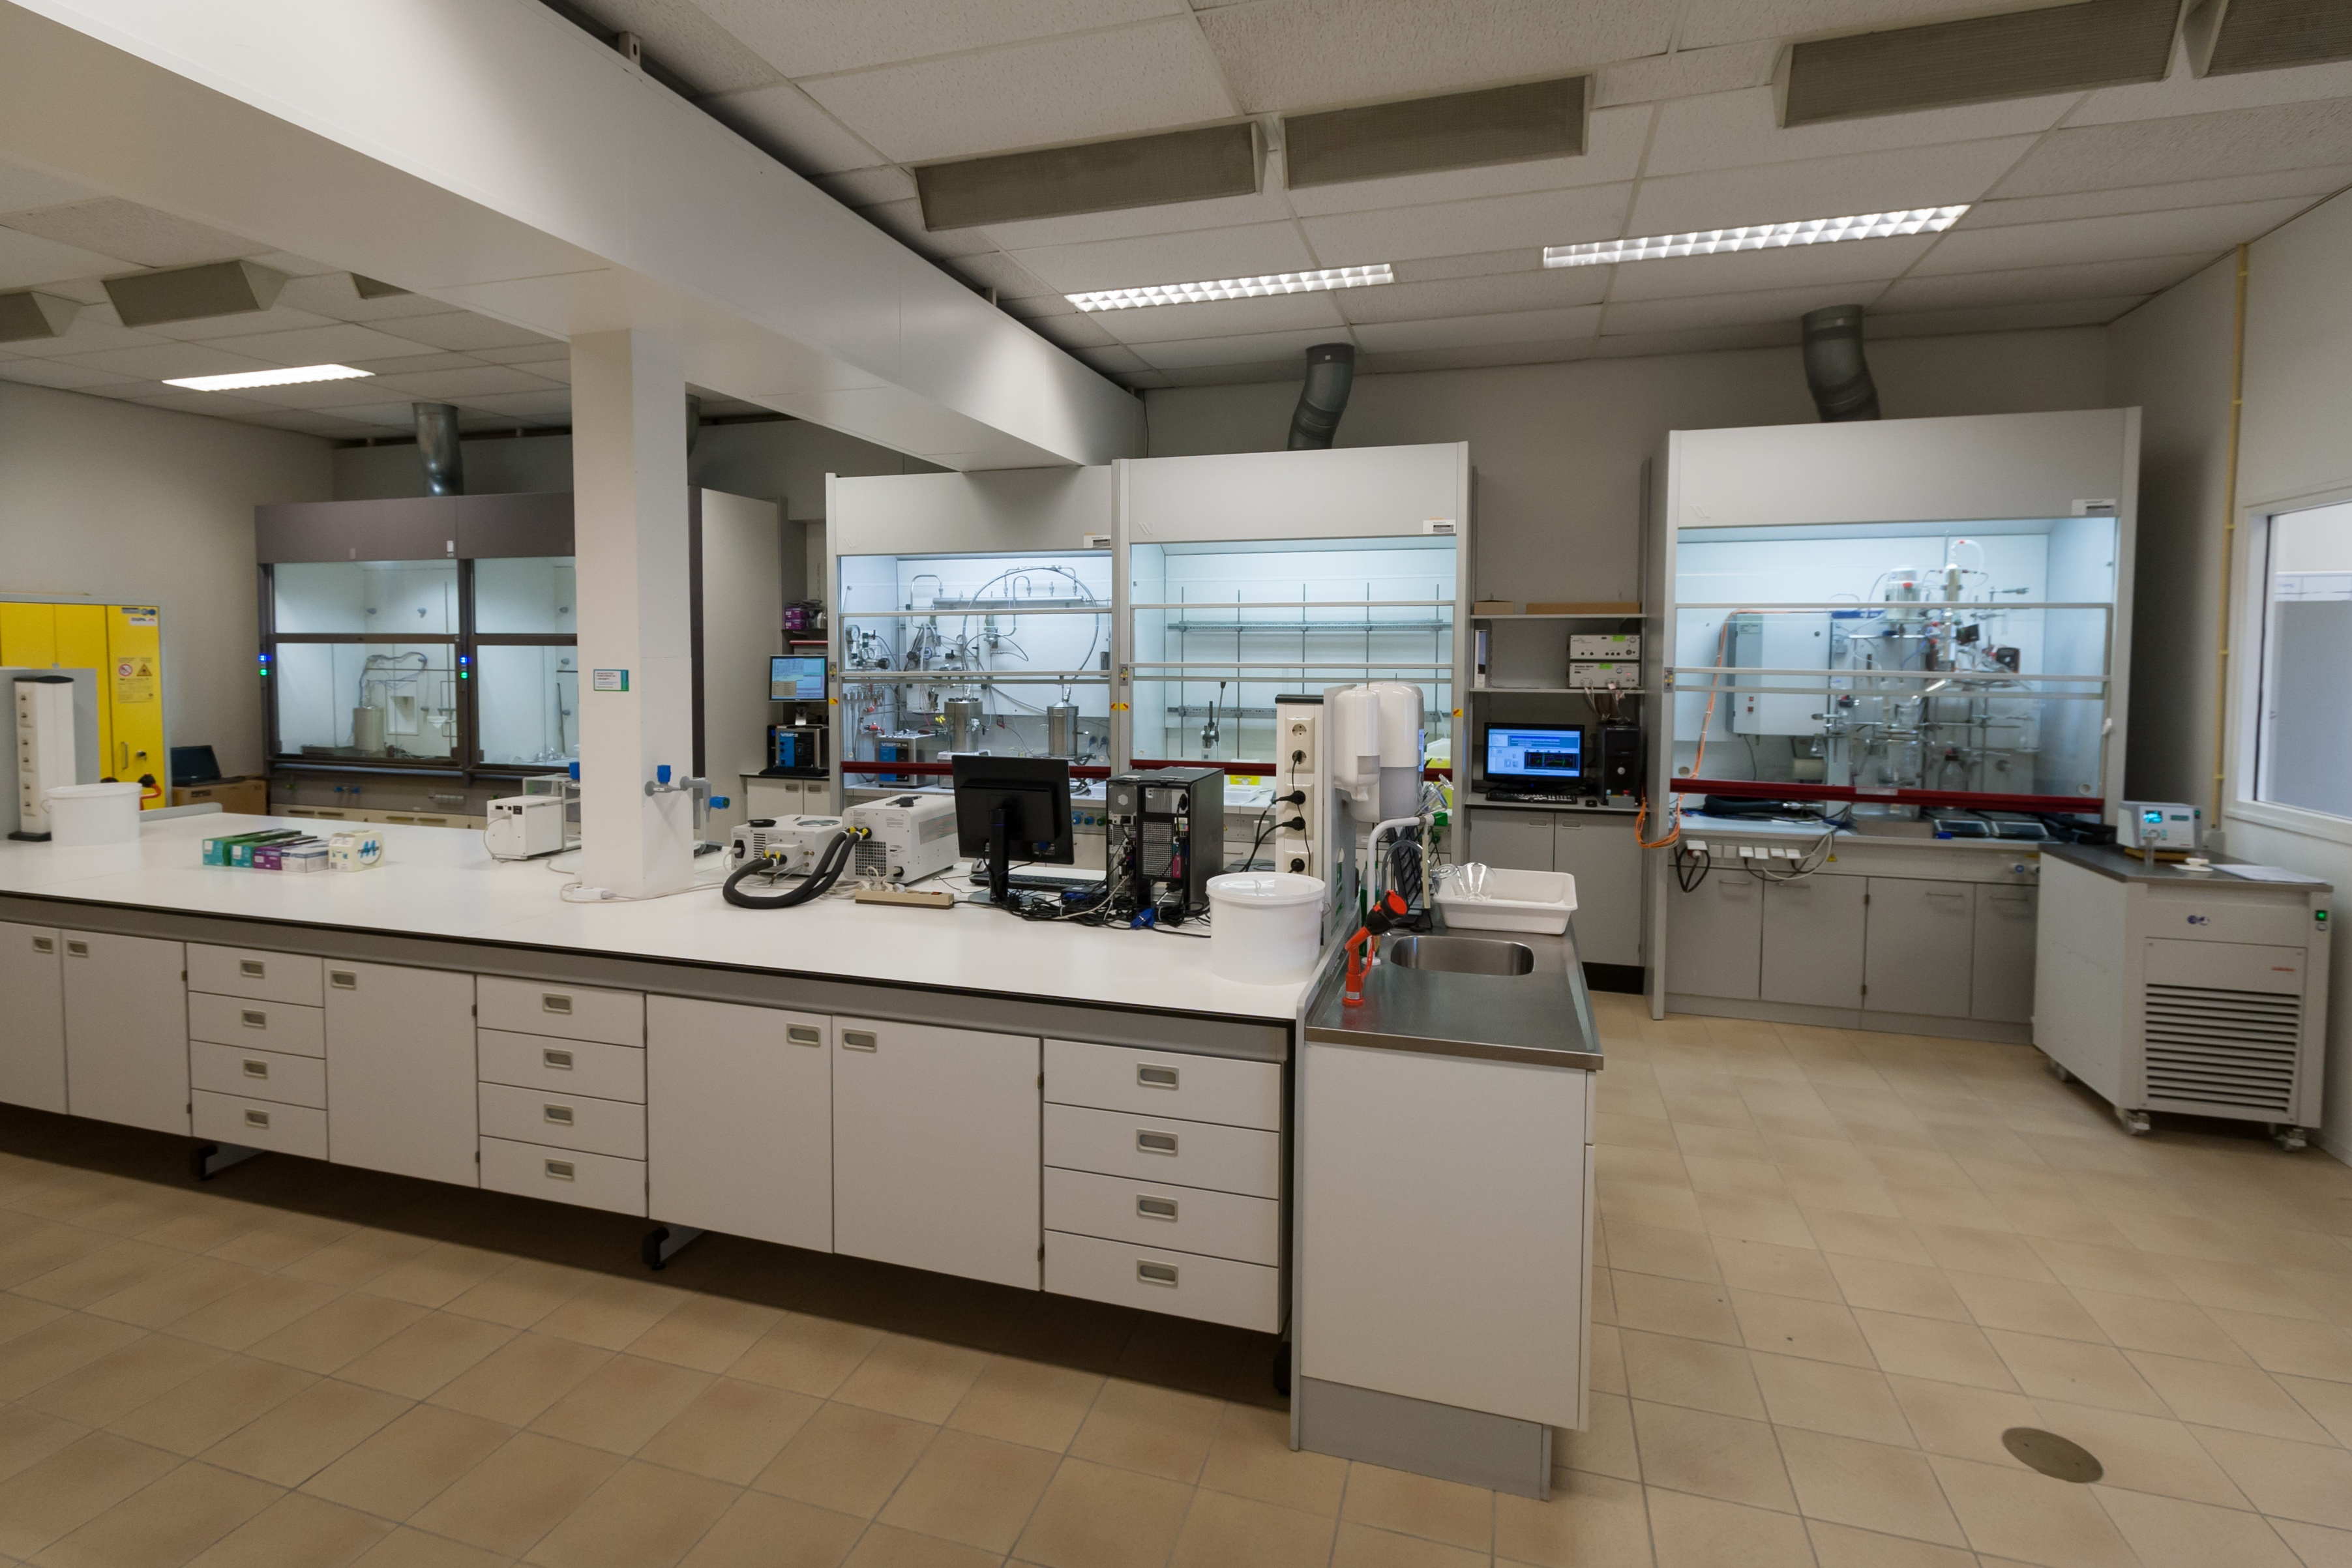 Fauske Lab in the Netherlands